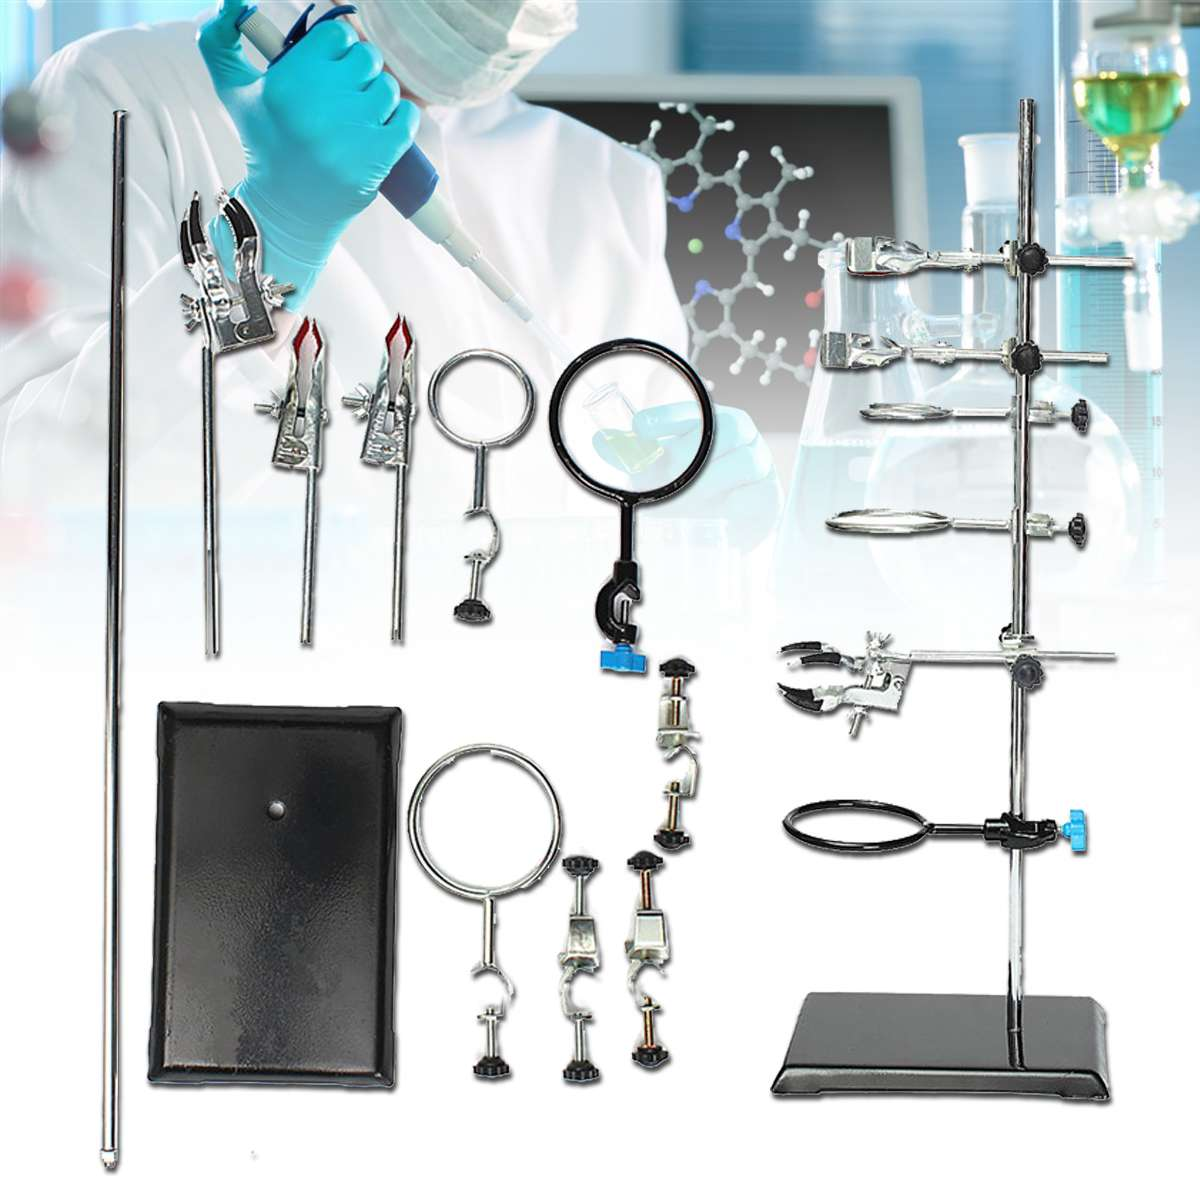 Laboratory Stands Support And Laboratory Clamp Lab Clips Flask Clamp Condenser Clamp Stands 600mm School Laboratory Supplies